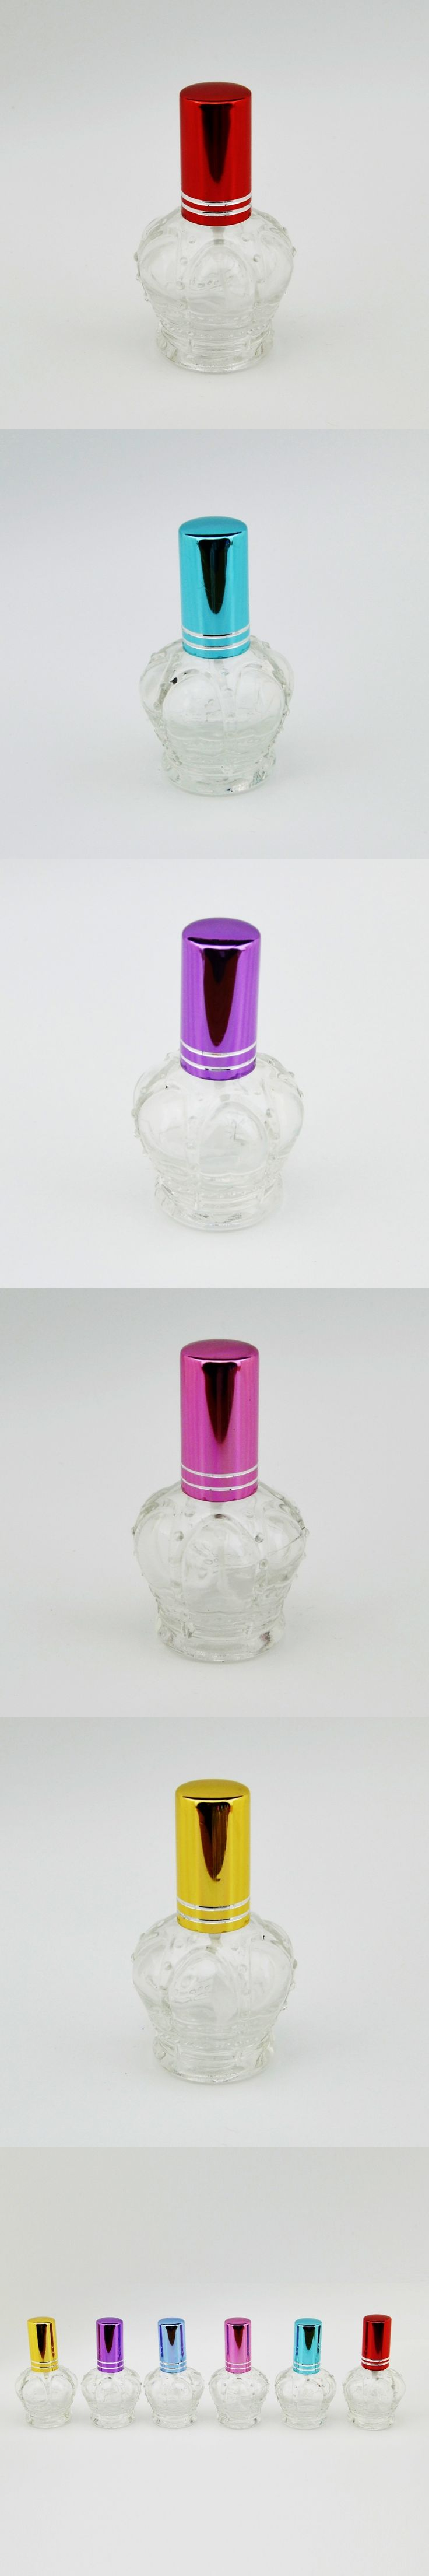 15ML High Quality 6 Colors Refillable Clear Glass  Spray Perfume Bottle Empty Imperial Crown Parfum  Case